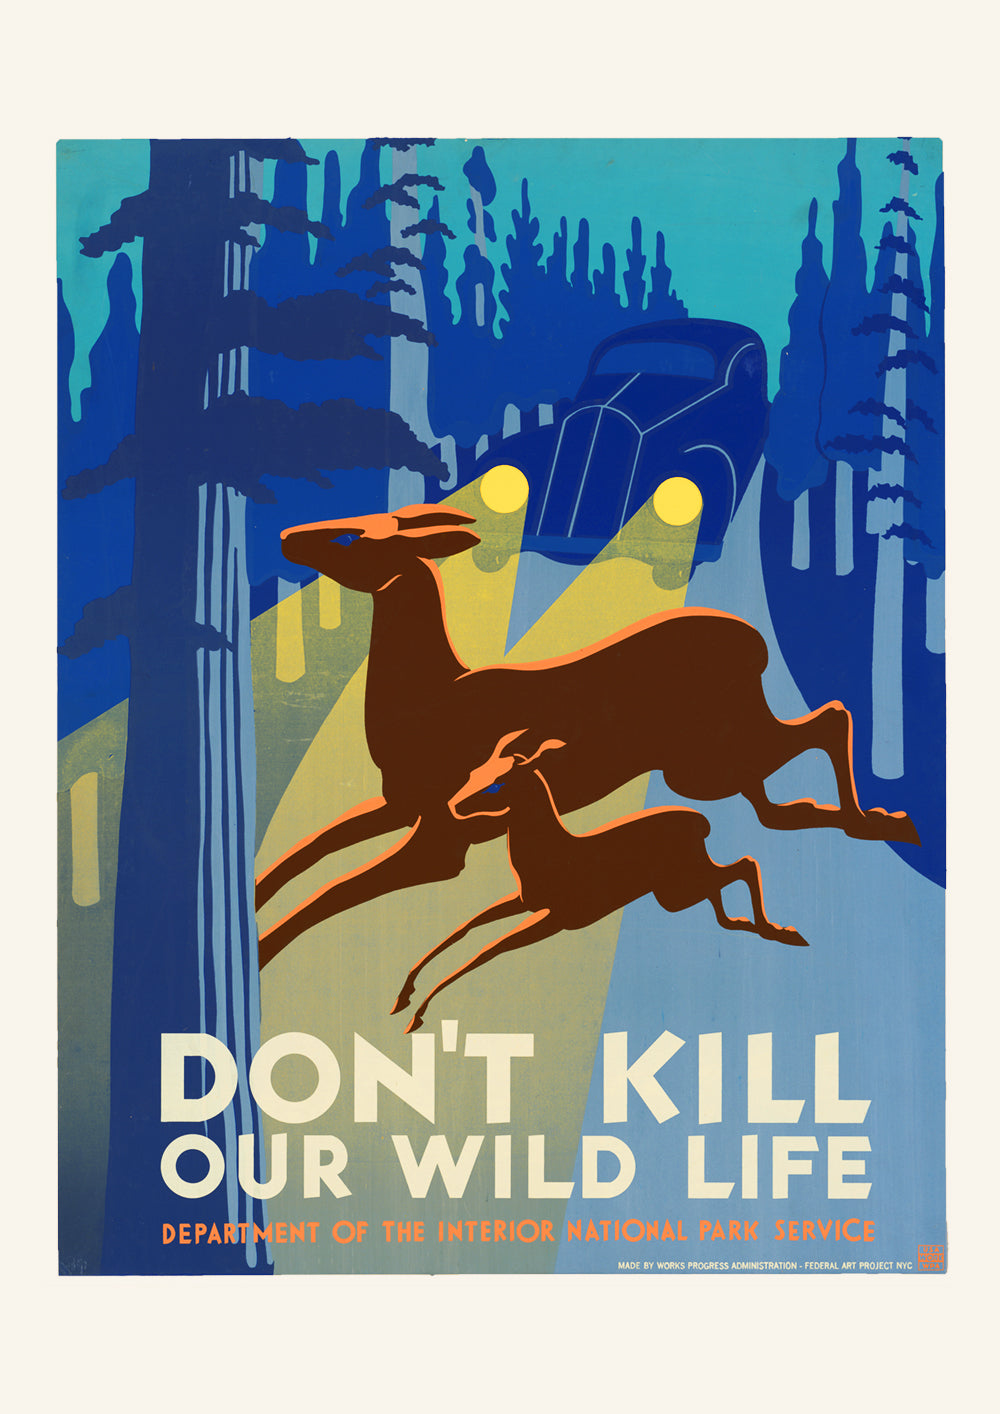 Don't kill our wildlife – American poster